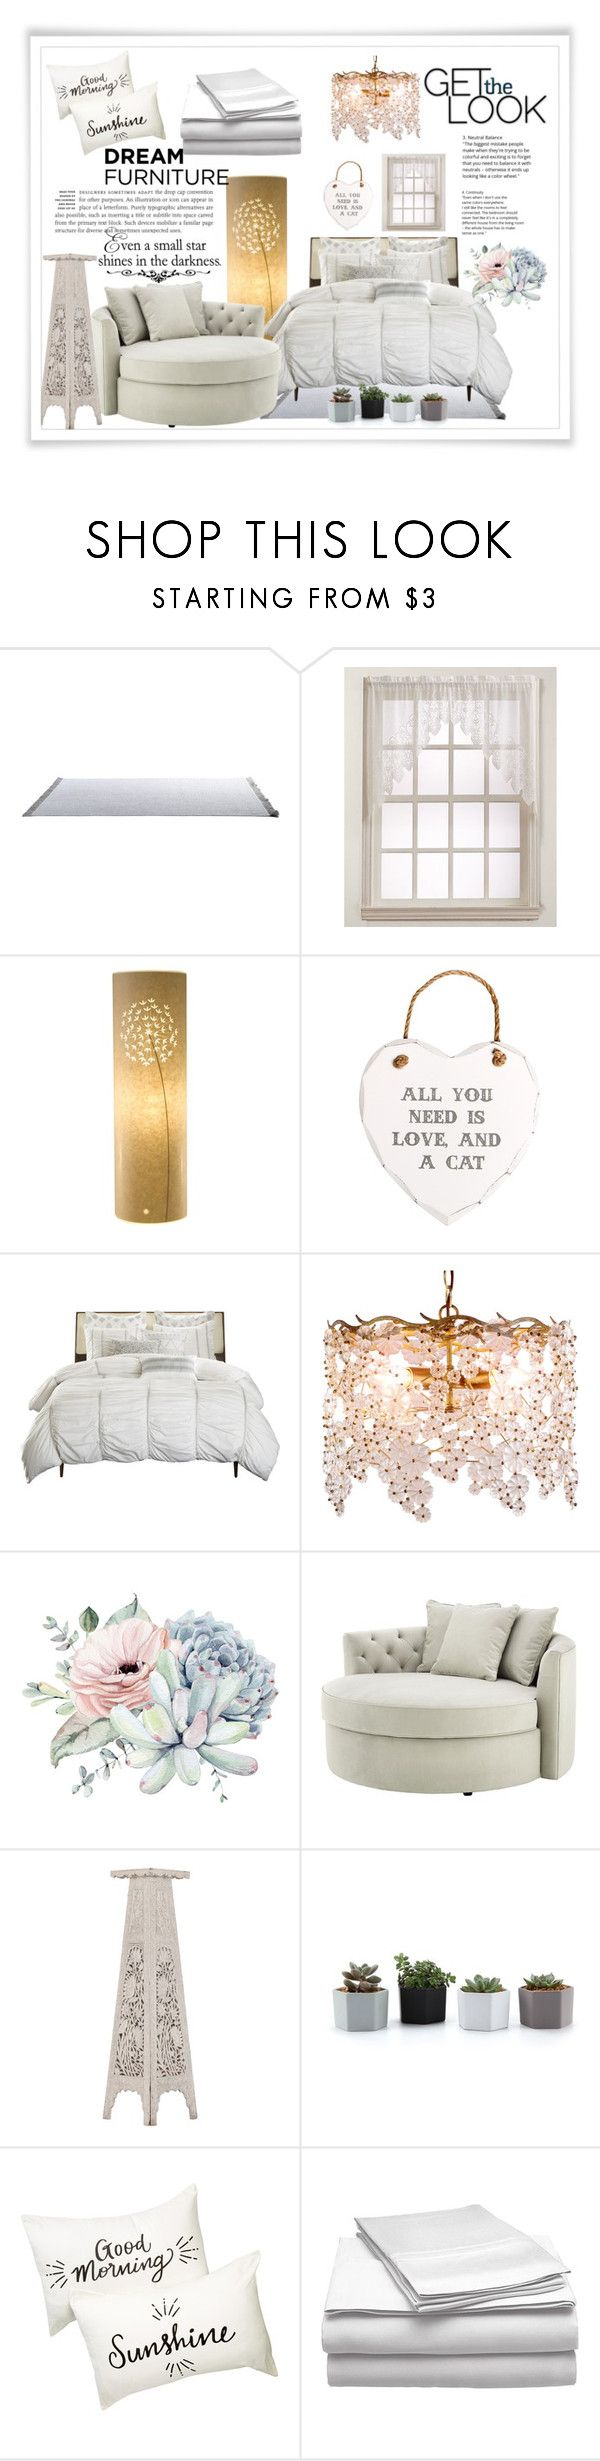 """dream furniture"" by bunnyboo2004 ❤ liked on Polyvore featuring interior, interiors, interior design, home, home decor, interior decorating, Lichtenberg, Canopy Designs, Eichholtz and Nordstrom Rack"